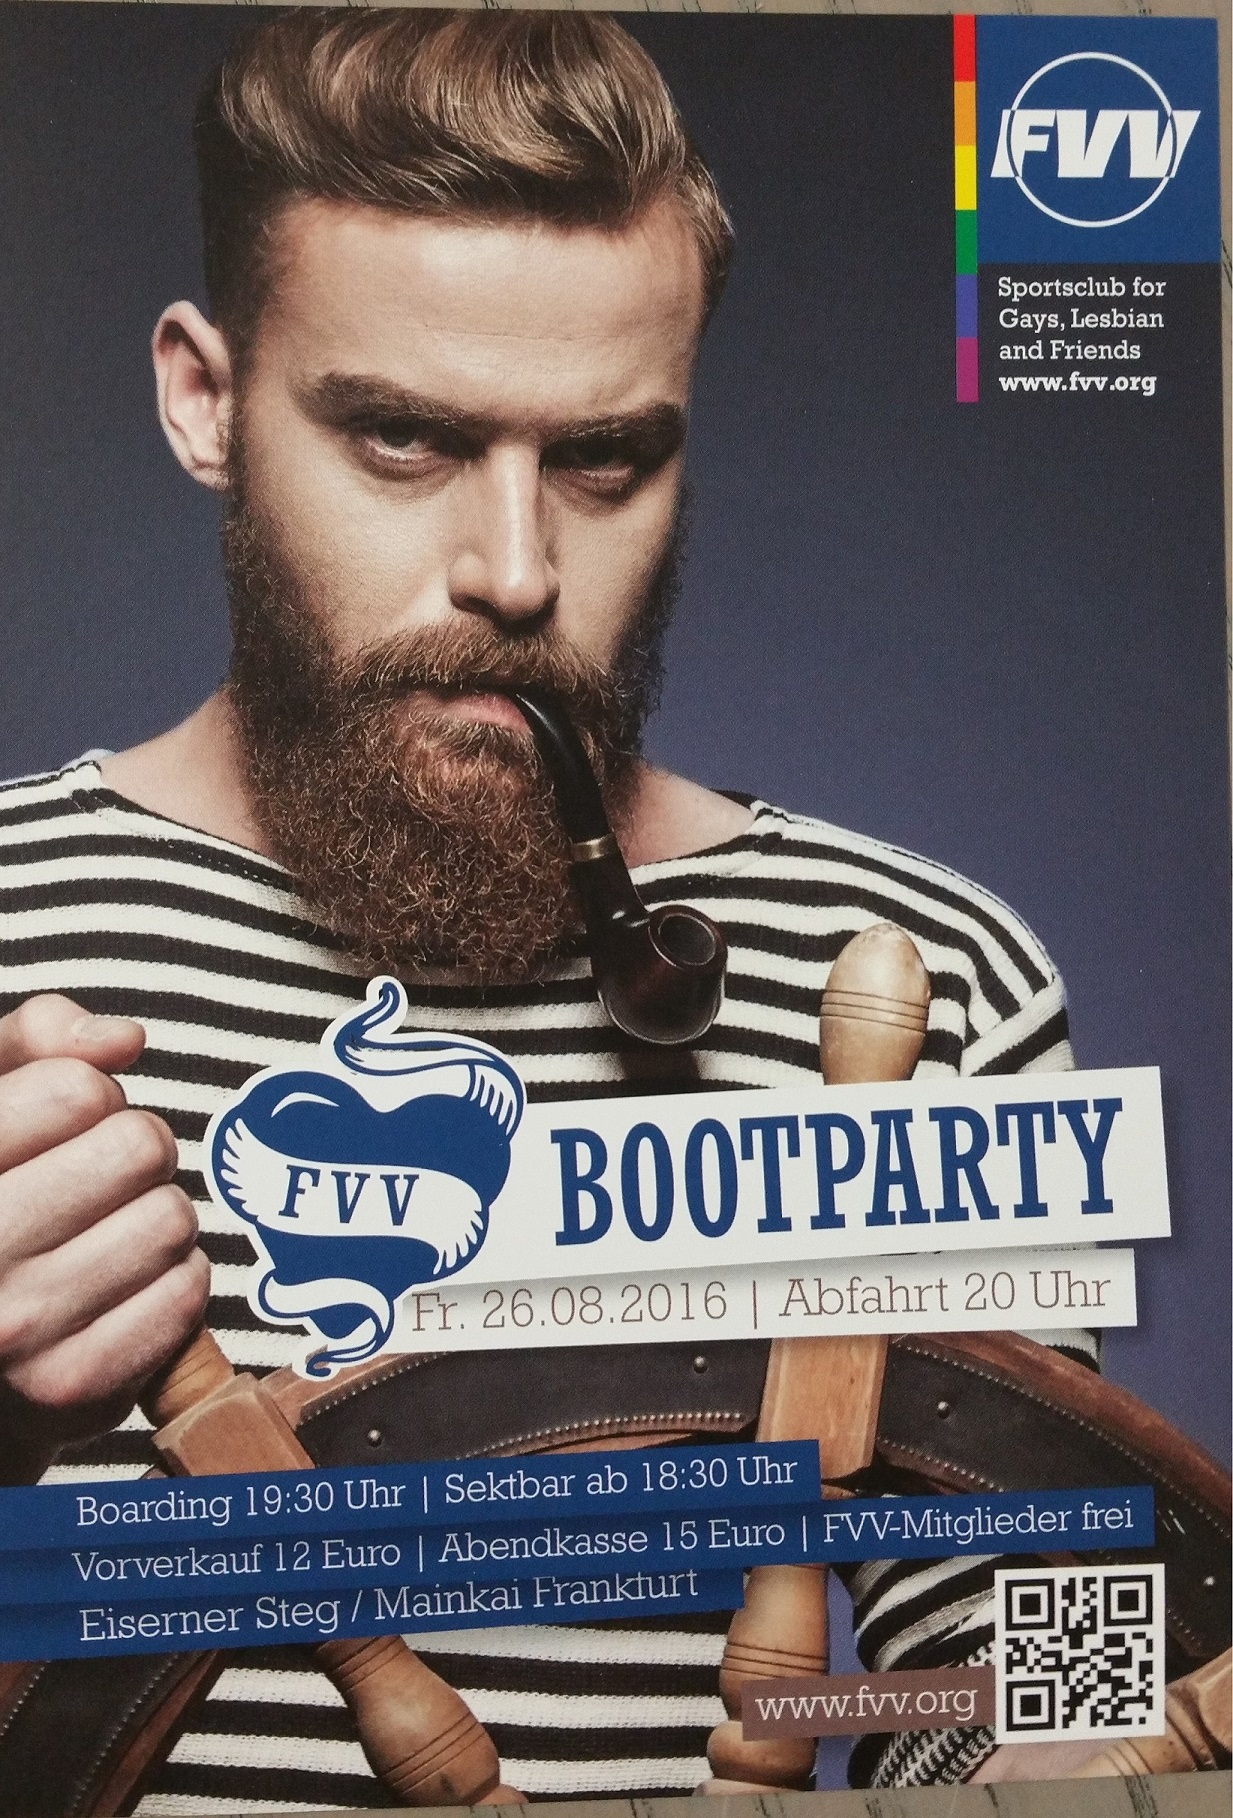 Bootparty 1